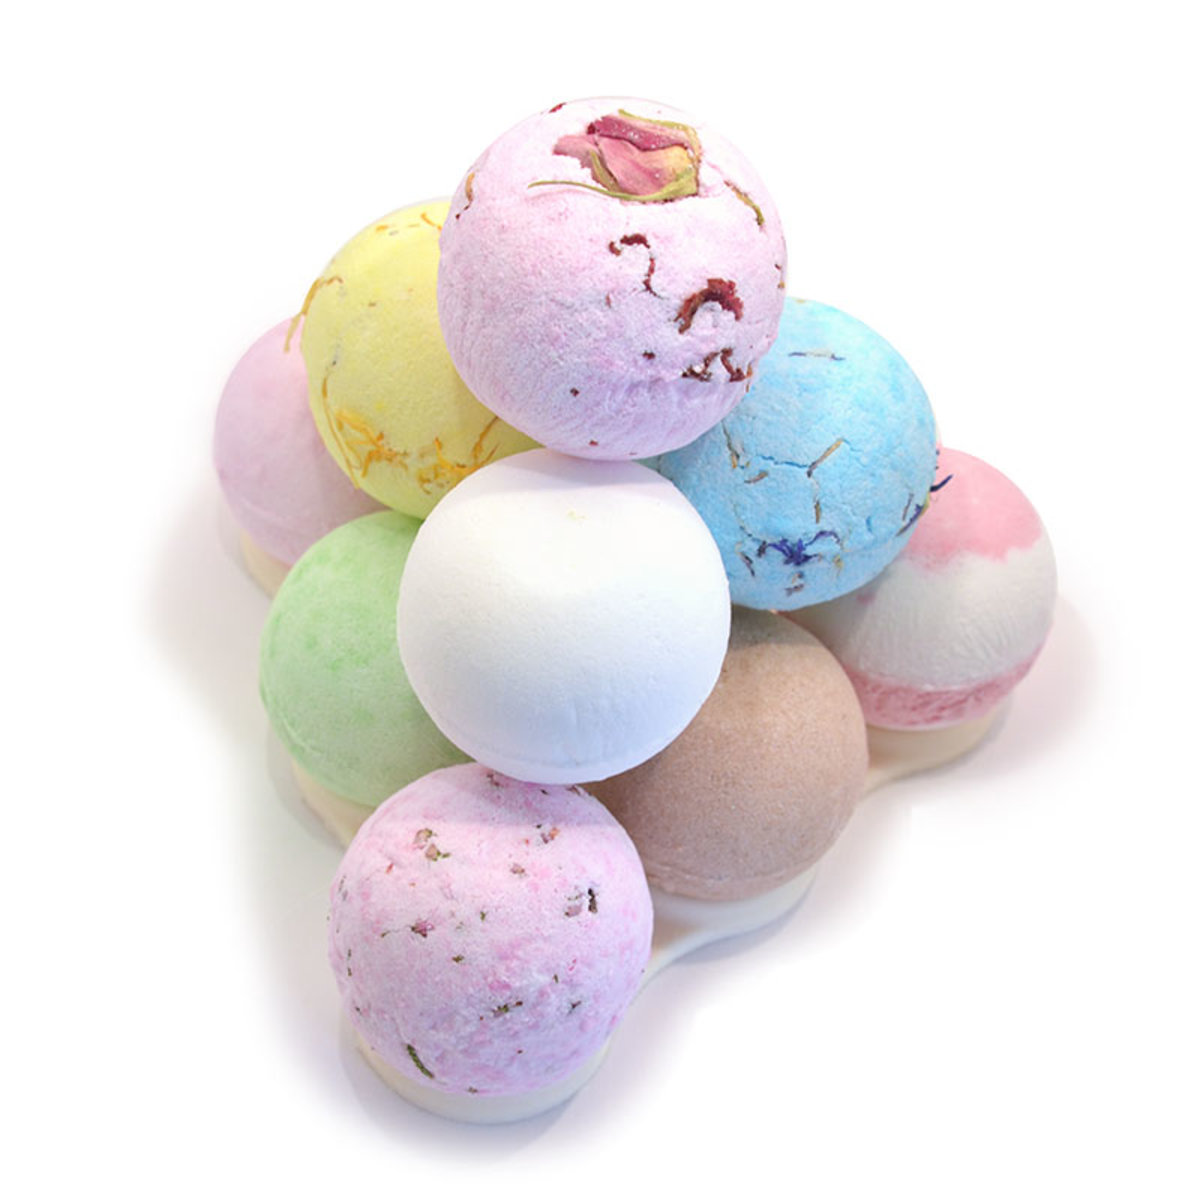 diy-bath-bomb-guide-and-7-inspiring-recipe-combinations